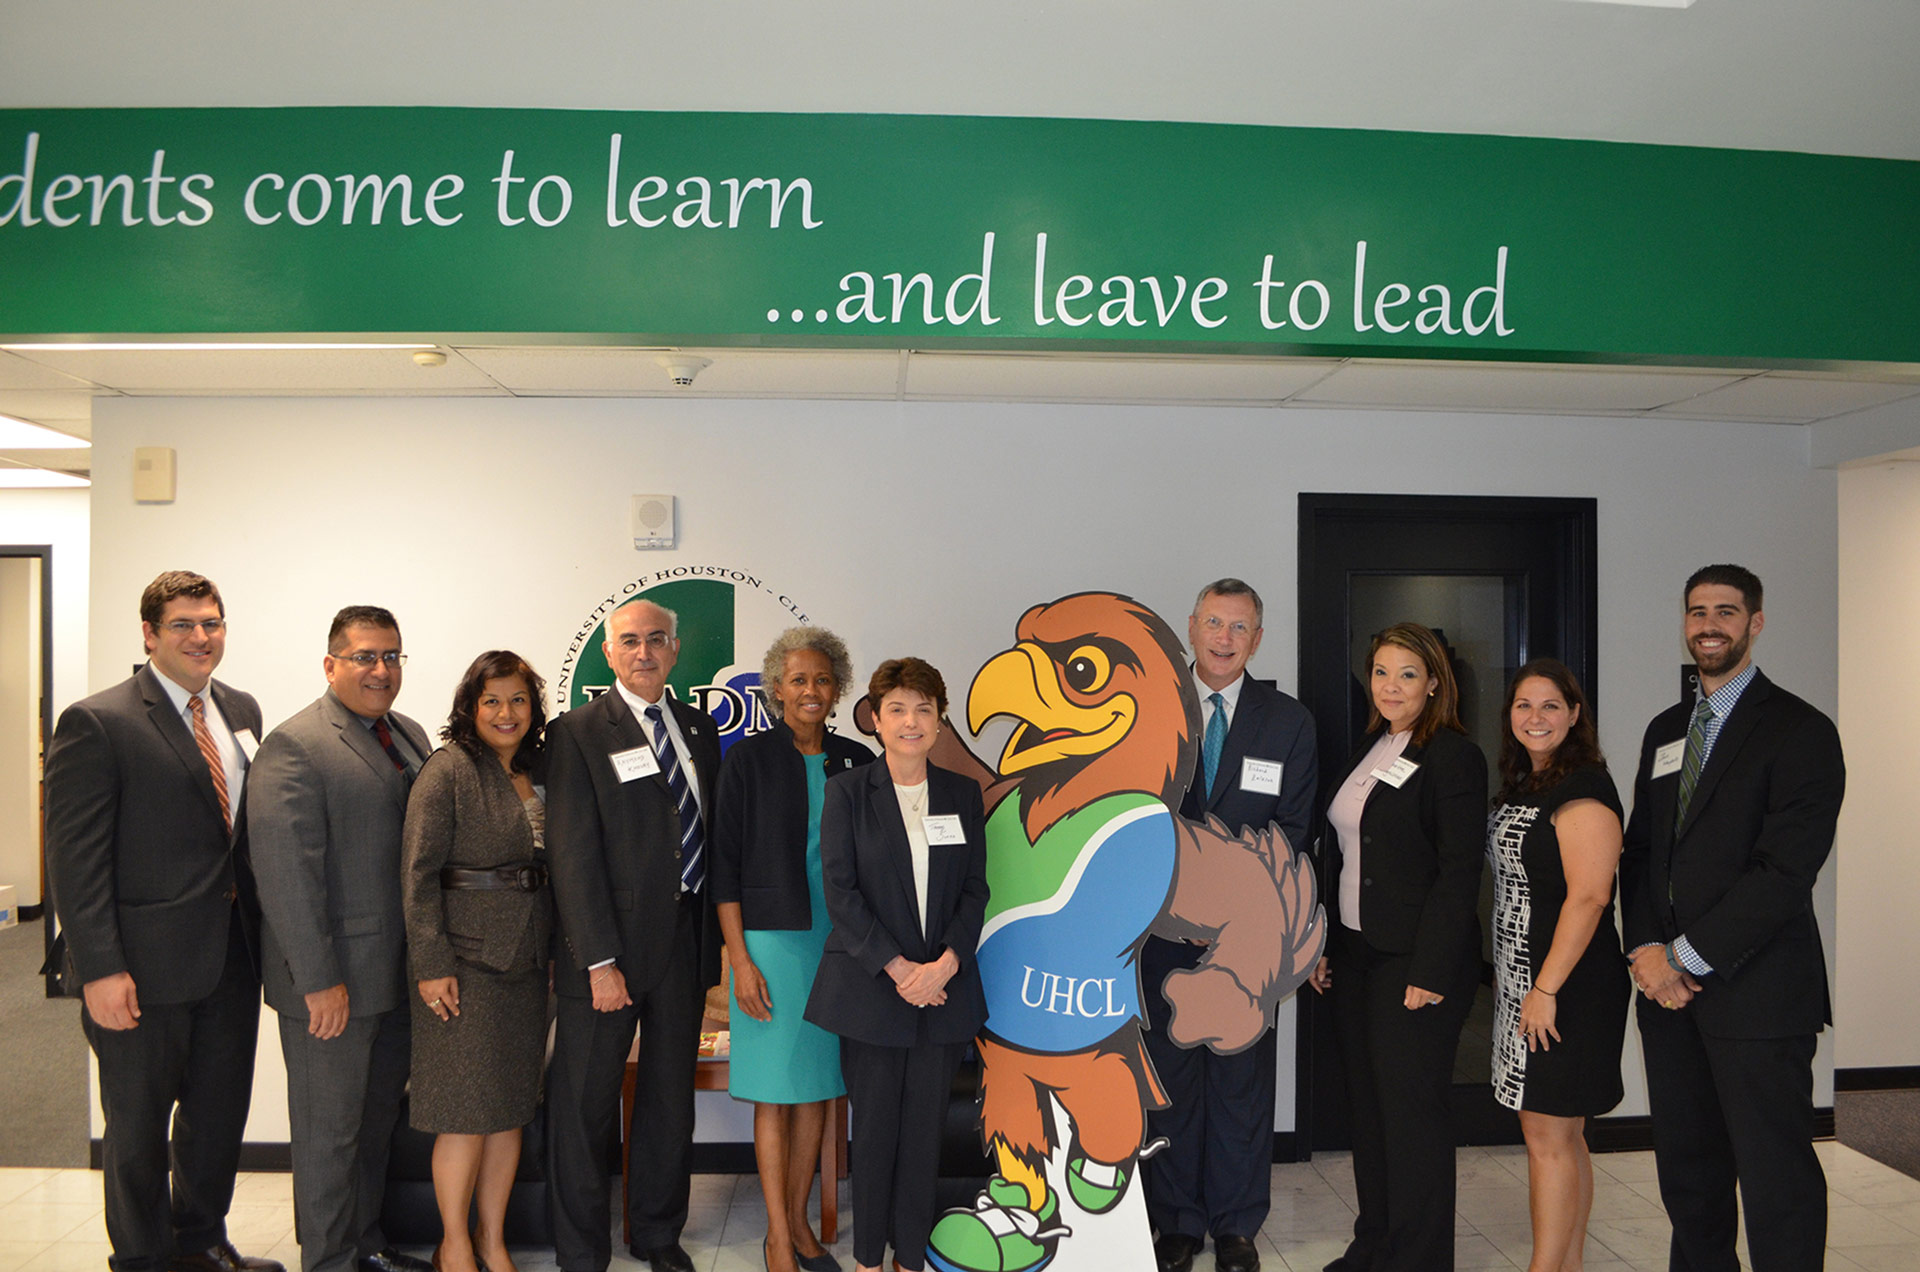 UHCL Healthcare Administration holds open house